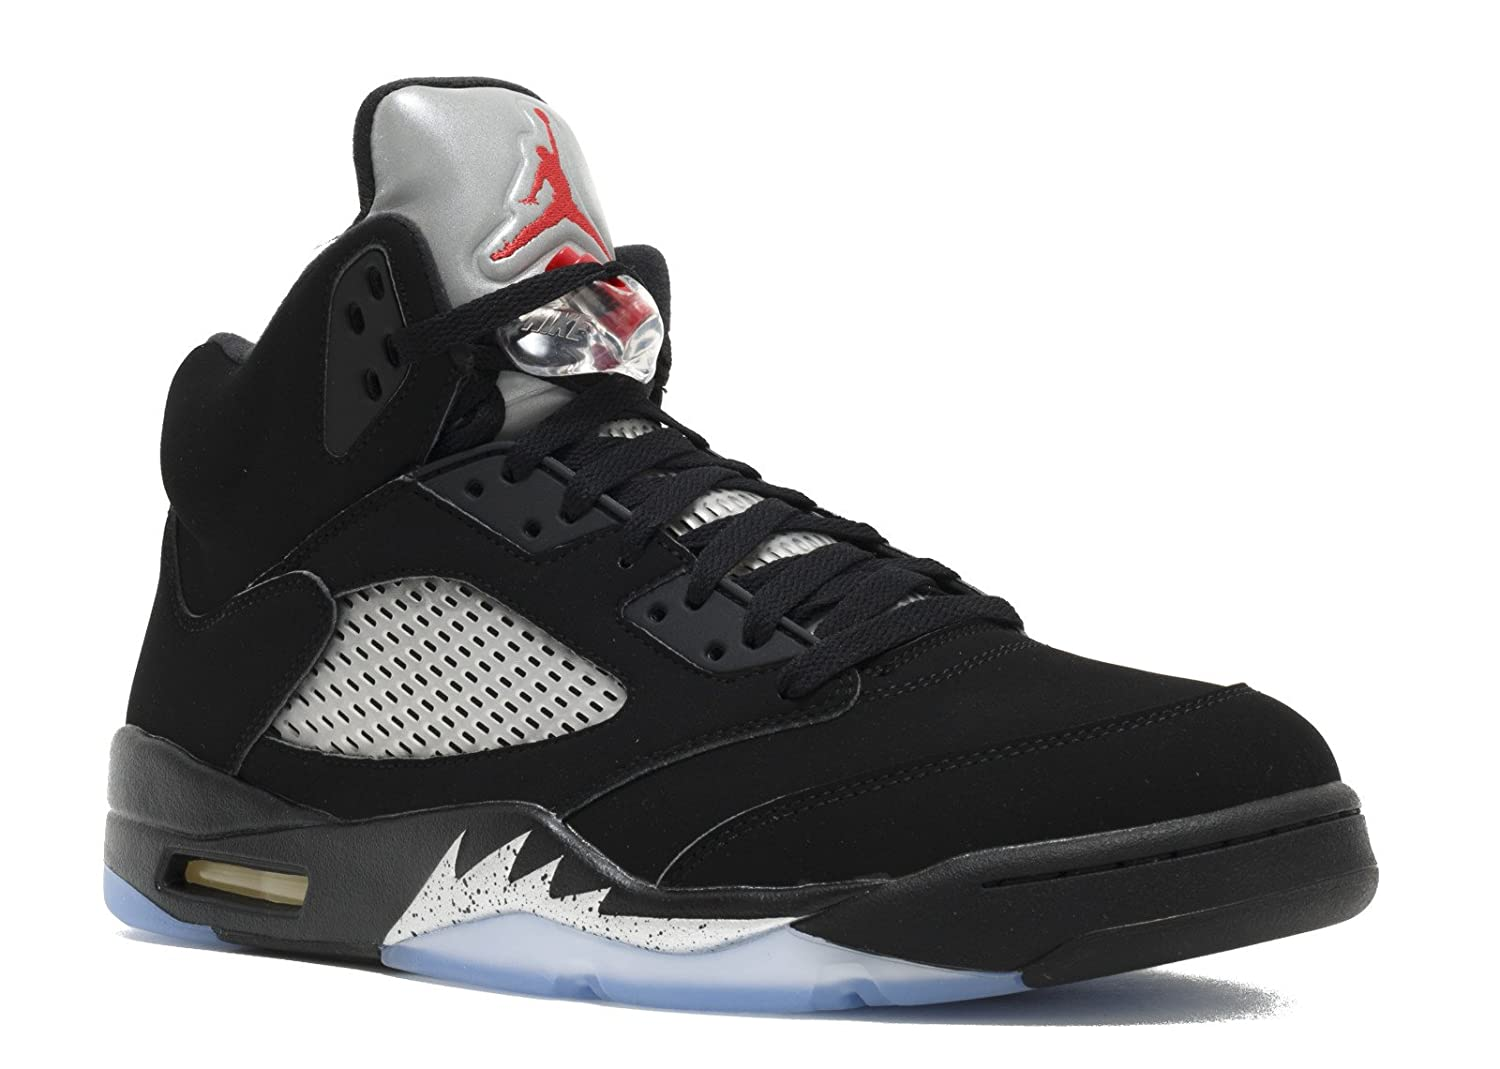 finest selection 673ec ede10 Air Jordan 5 Retro OG Black/Fire Red-Metallic Silver 845035-003 July 23,  2016 Release Men's Shoe Size (7)